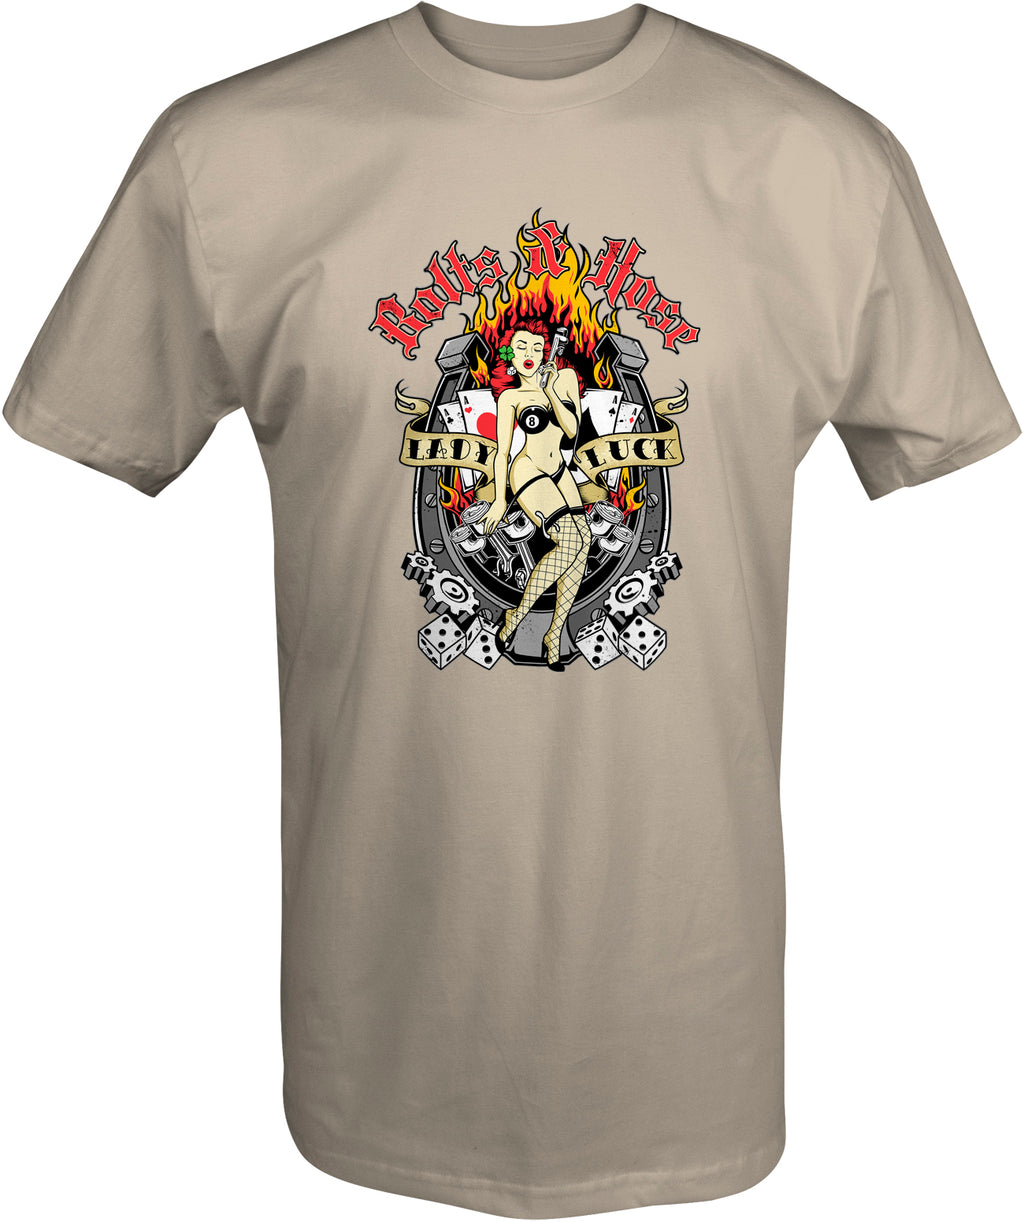 Lady Luck WWII inspired t shirt